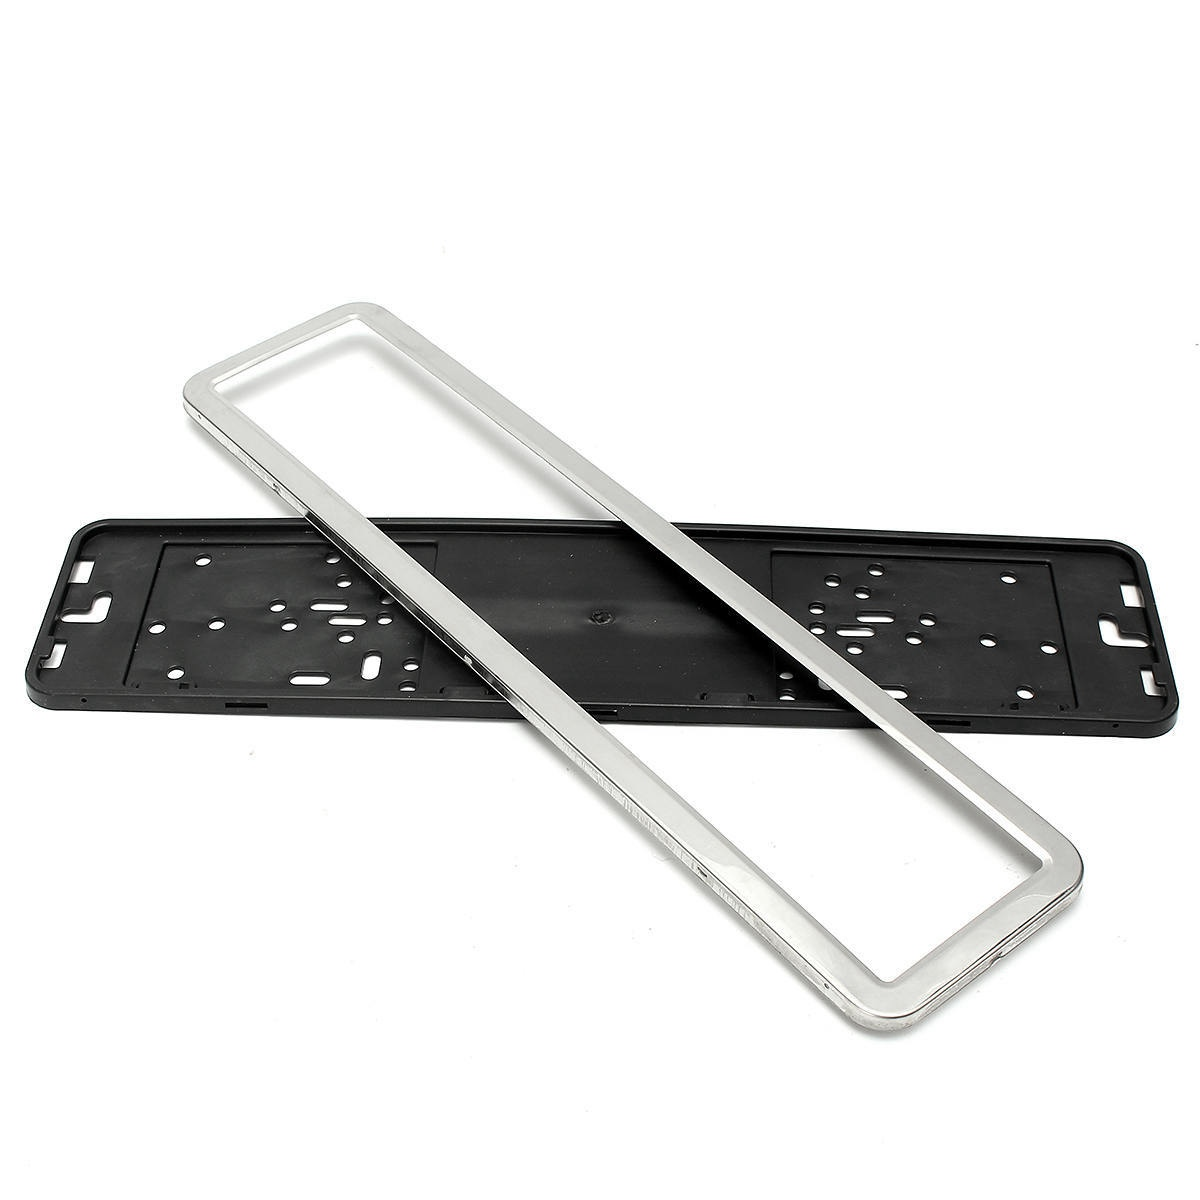 1 Set Stainless Steel European German Russian 8K Car License Plate Frame Number Plate Holder